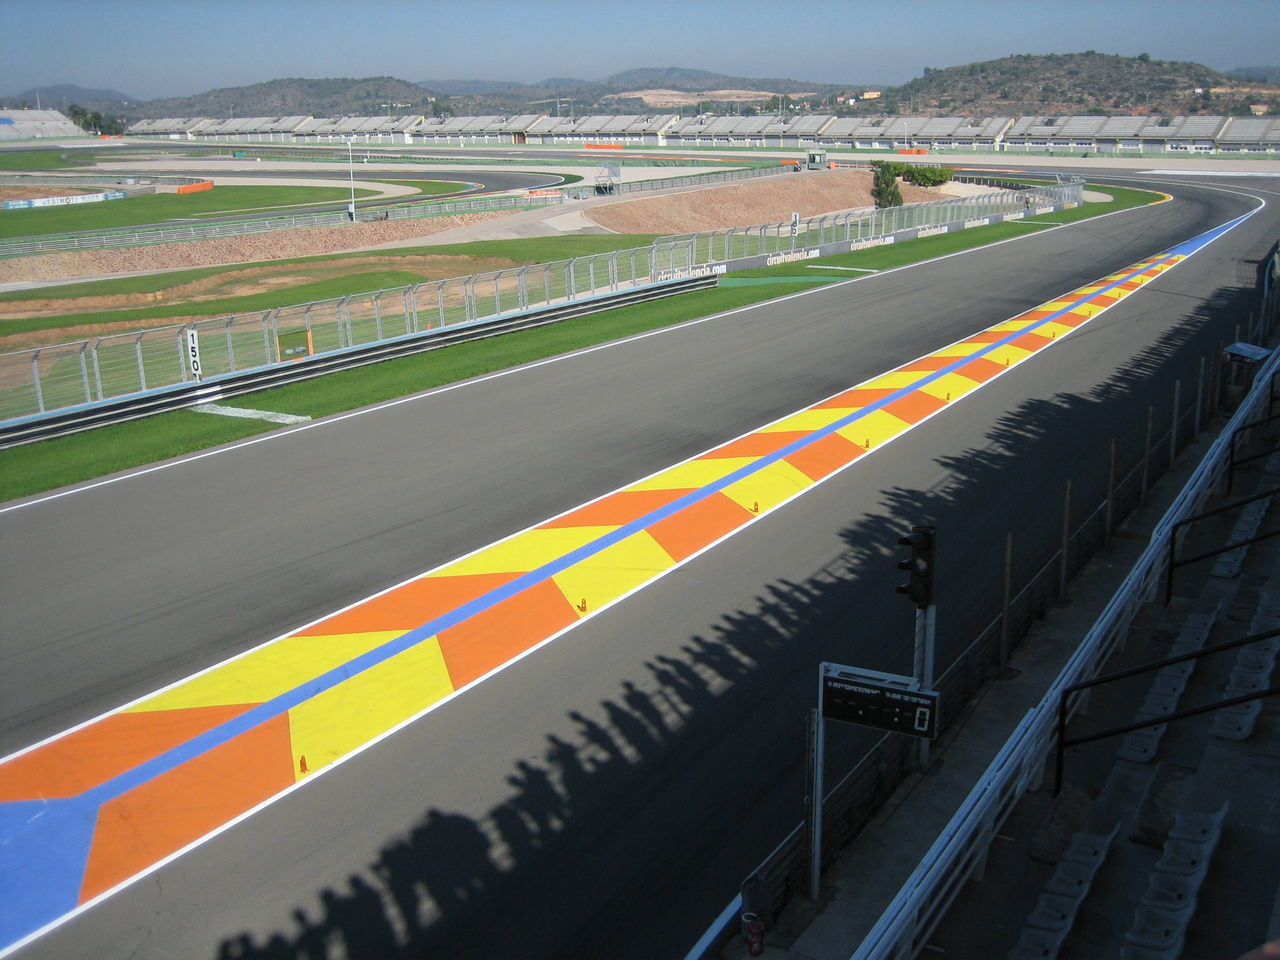 Circuit in Cheste (Valencia, Spain) is really beautiful. Bright Colours Bright Light Circuit Ricardo Tormo MotoGP EventPhotography Light And Shadow Moto Shadows Sunny Day The Day After Perspective Lookingdown Spectators Need For Speed Motogp TakeoverContrast